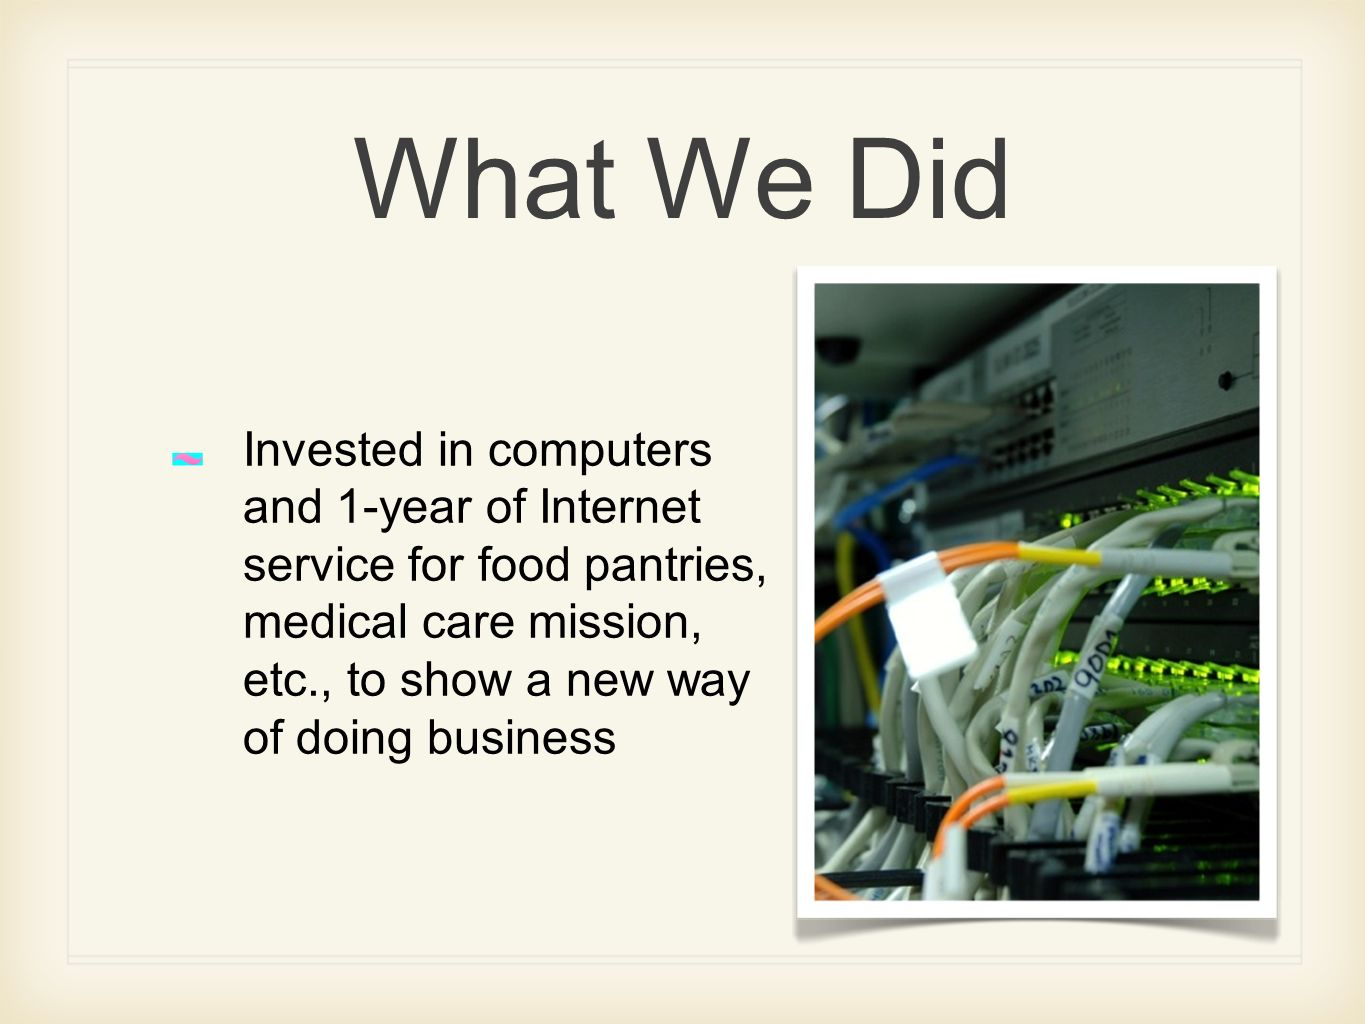 What We Did Invested in computers and 1-year of Internet service for food pantries, medical care mission, etc., to show a new way of doing business